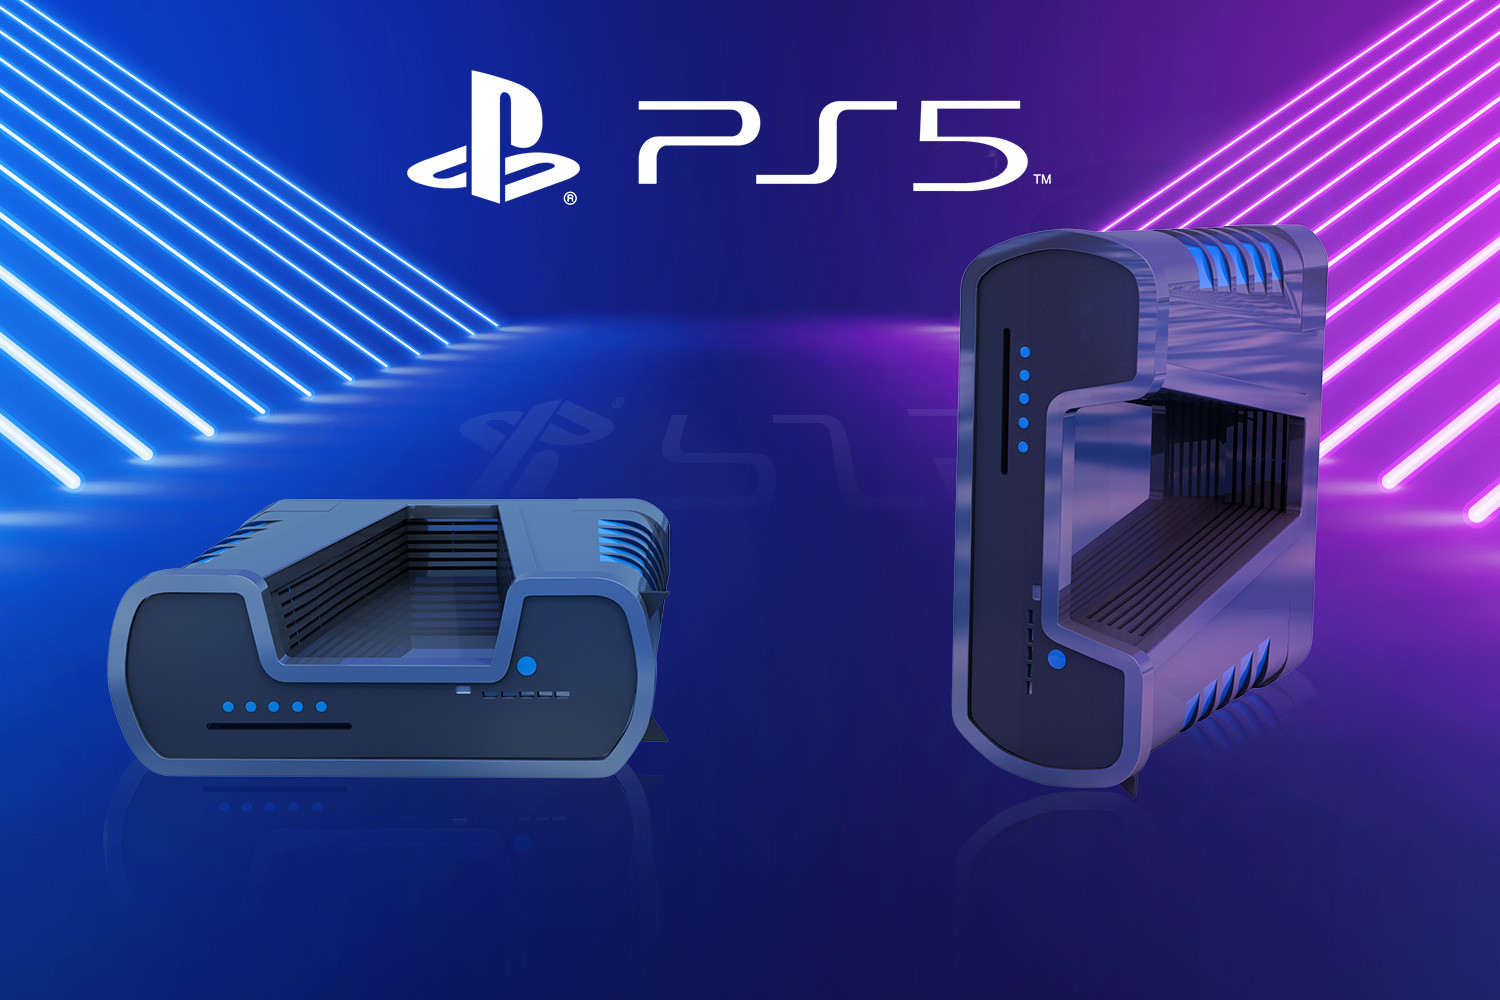 You Will Be Able to Play 4K Blu-Ray Movies on Your PS5